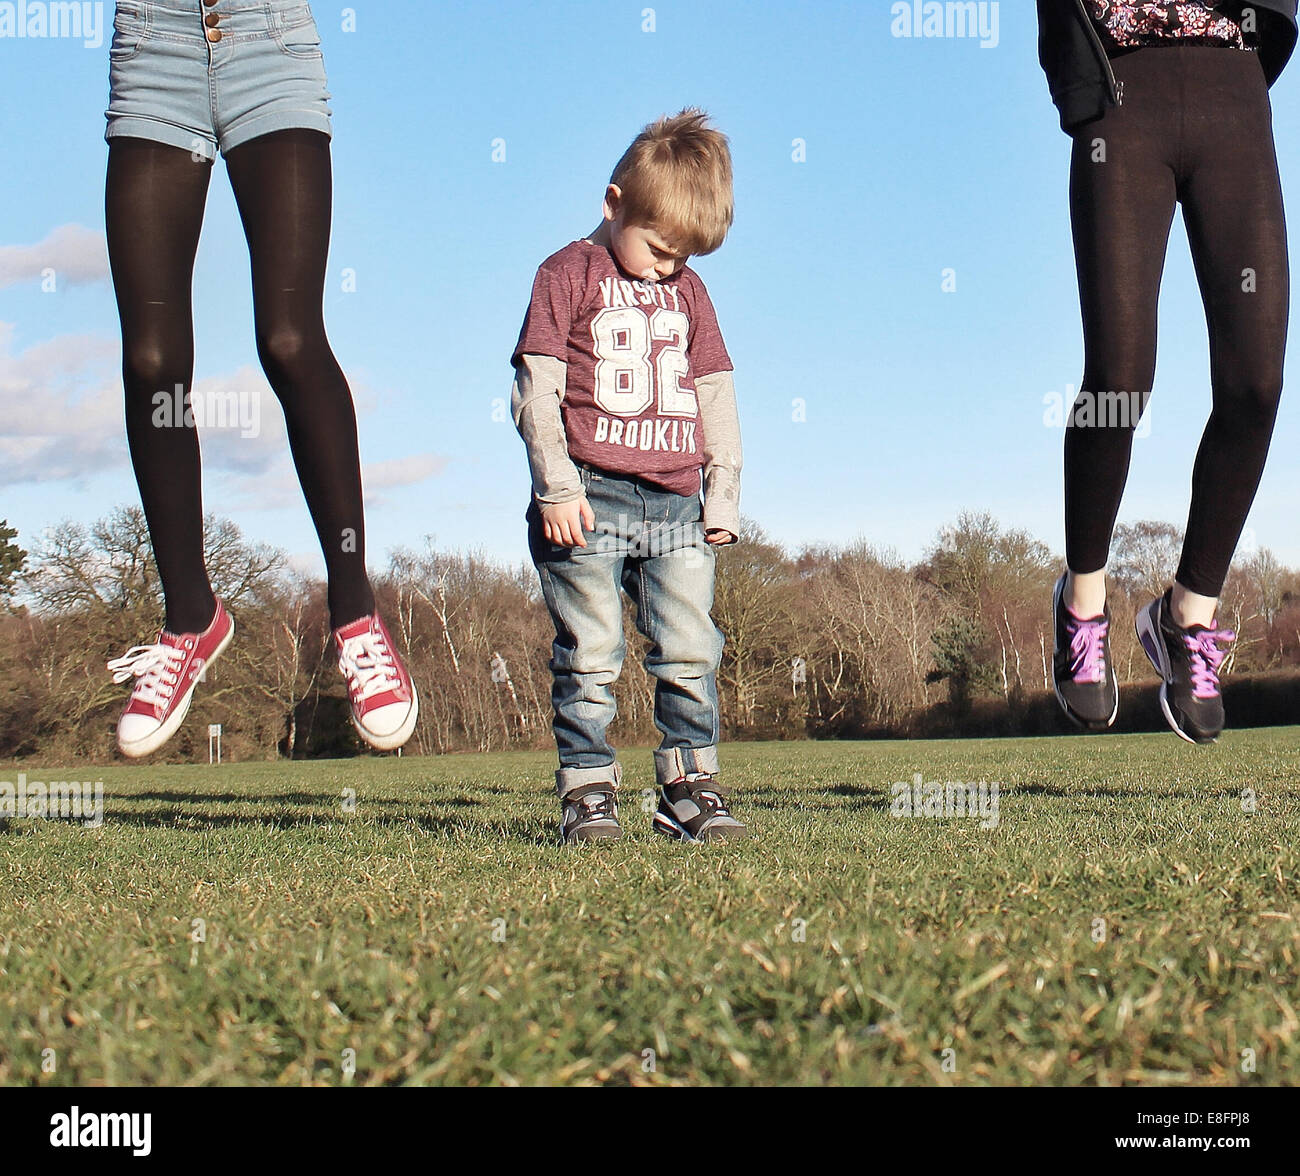 Boy sulking as two girls jump higher than he can - Stock Image